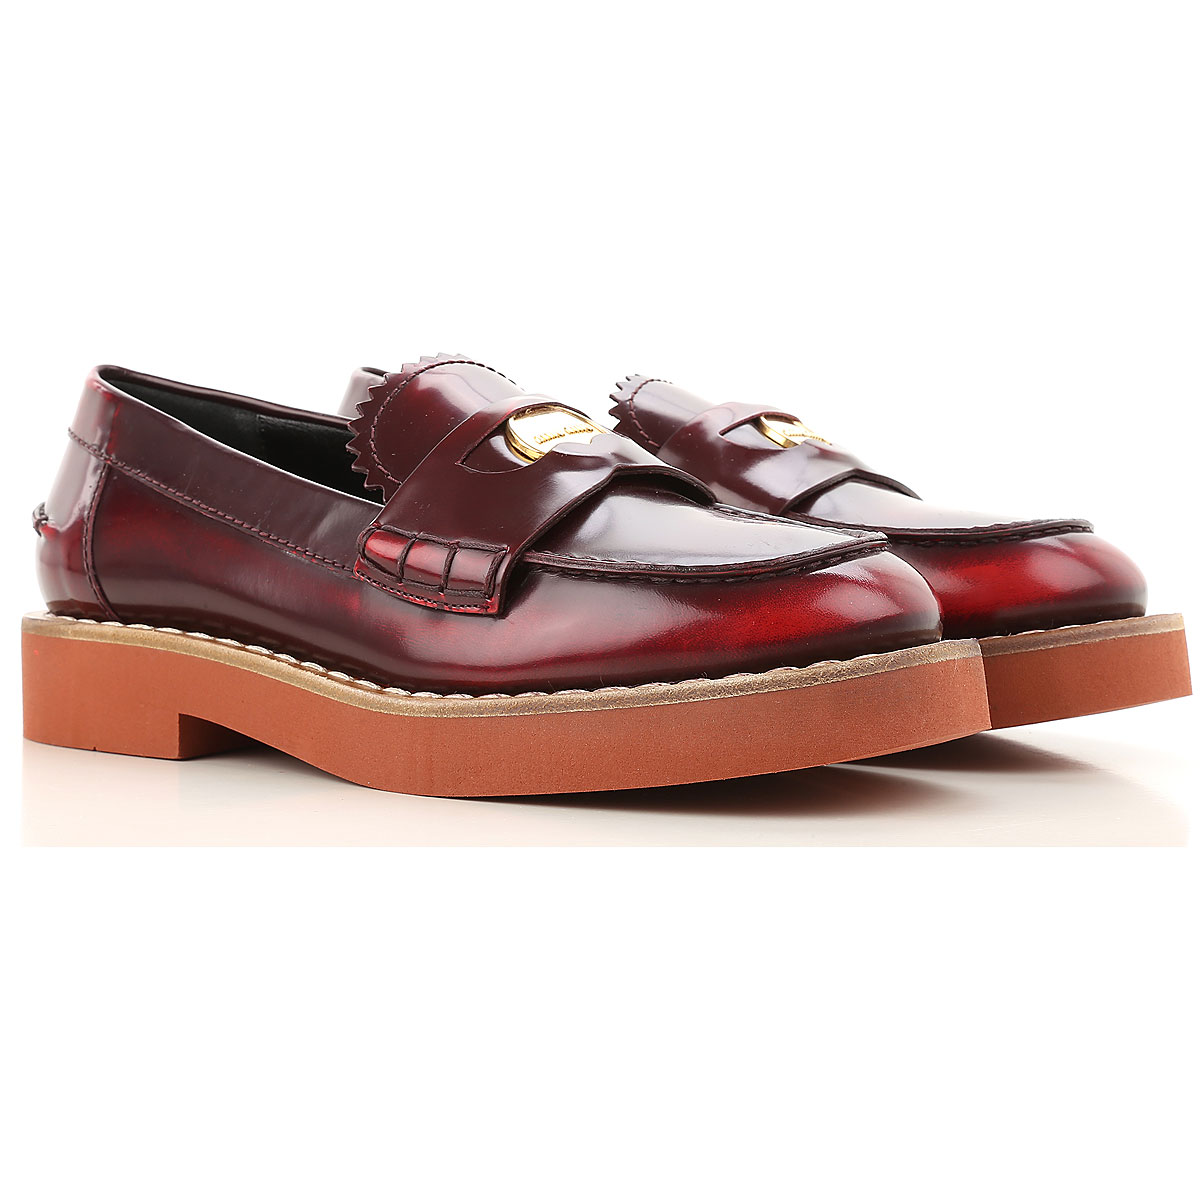 Miu Miu Loafers for Women in Outlet Red Scarlet USA - GOOFASH